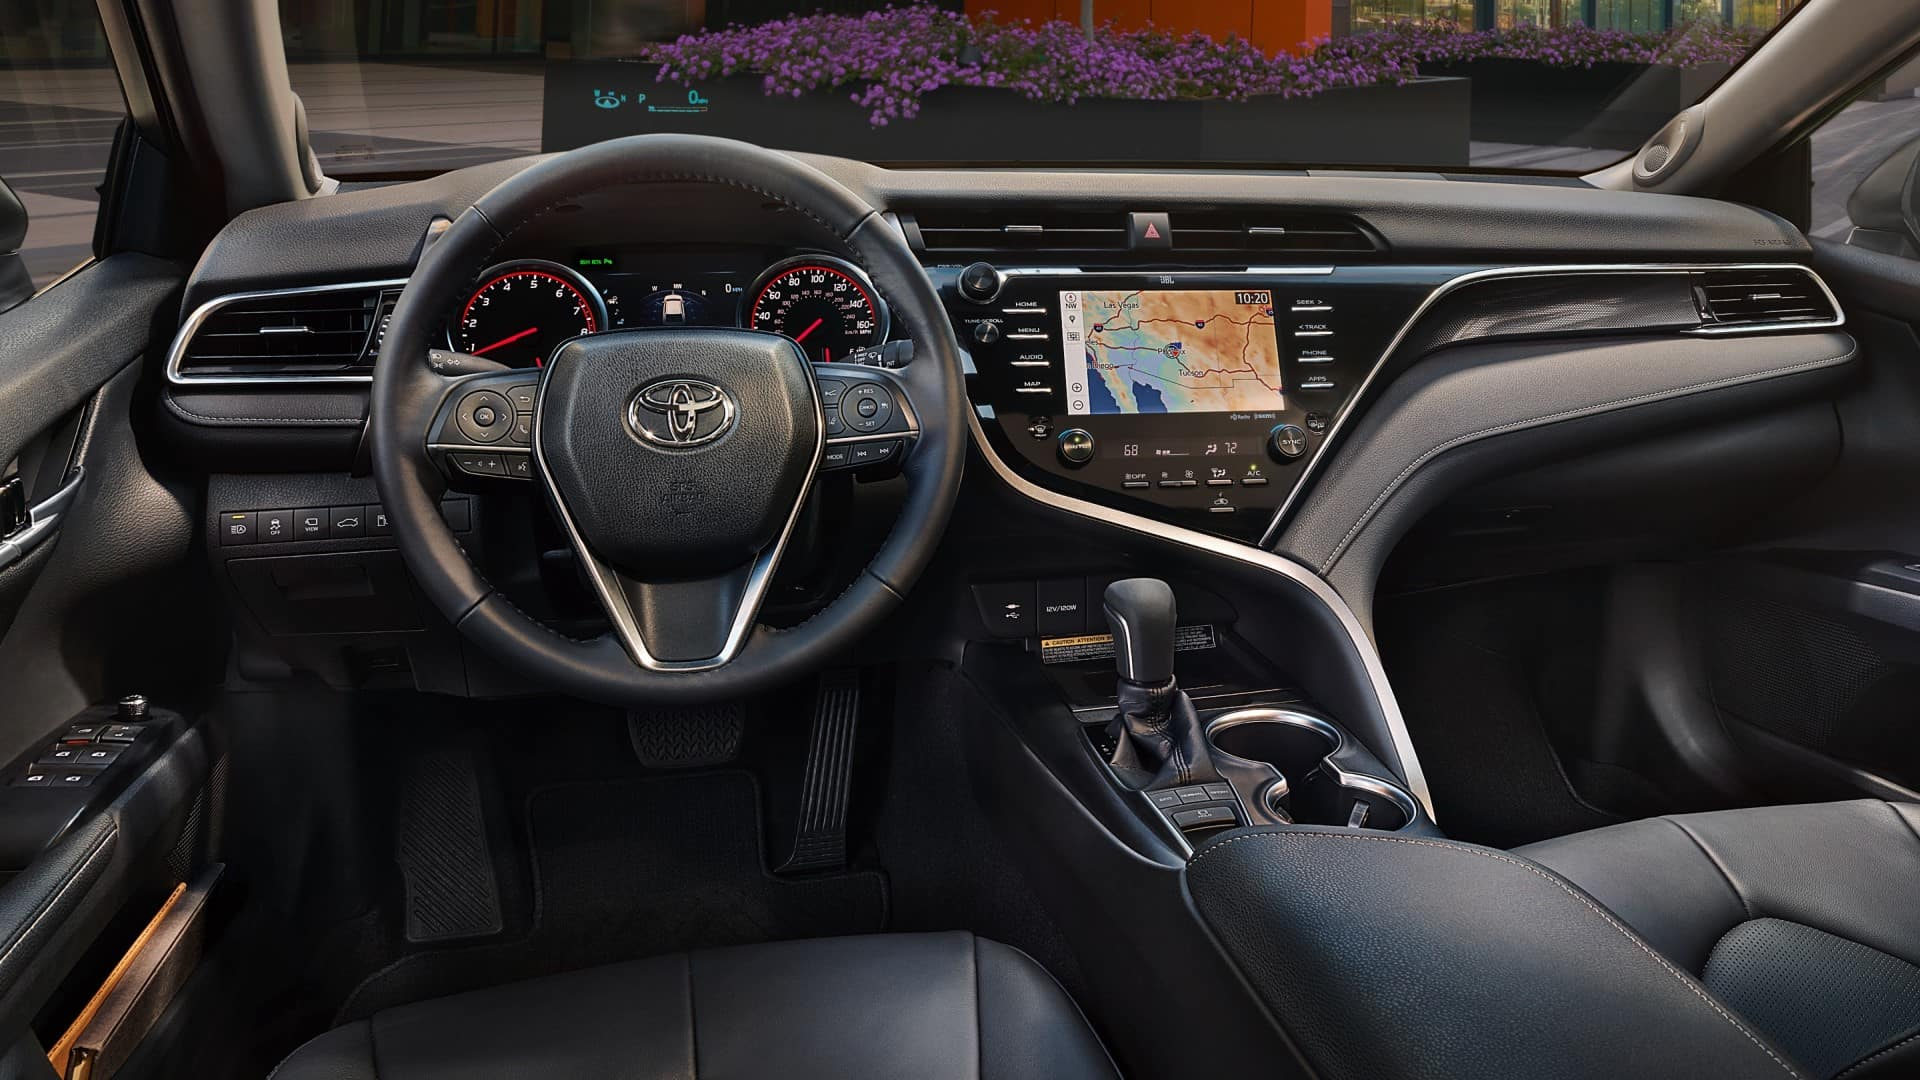 Toyota_Camry_Driver_Cockpit